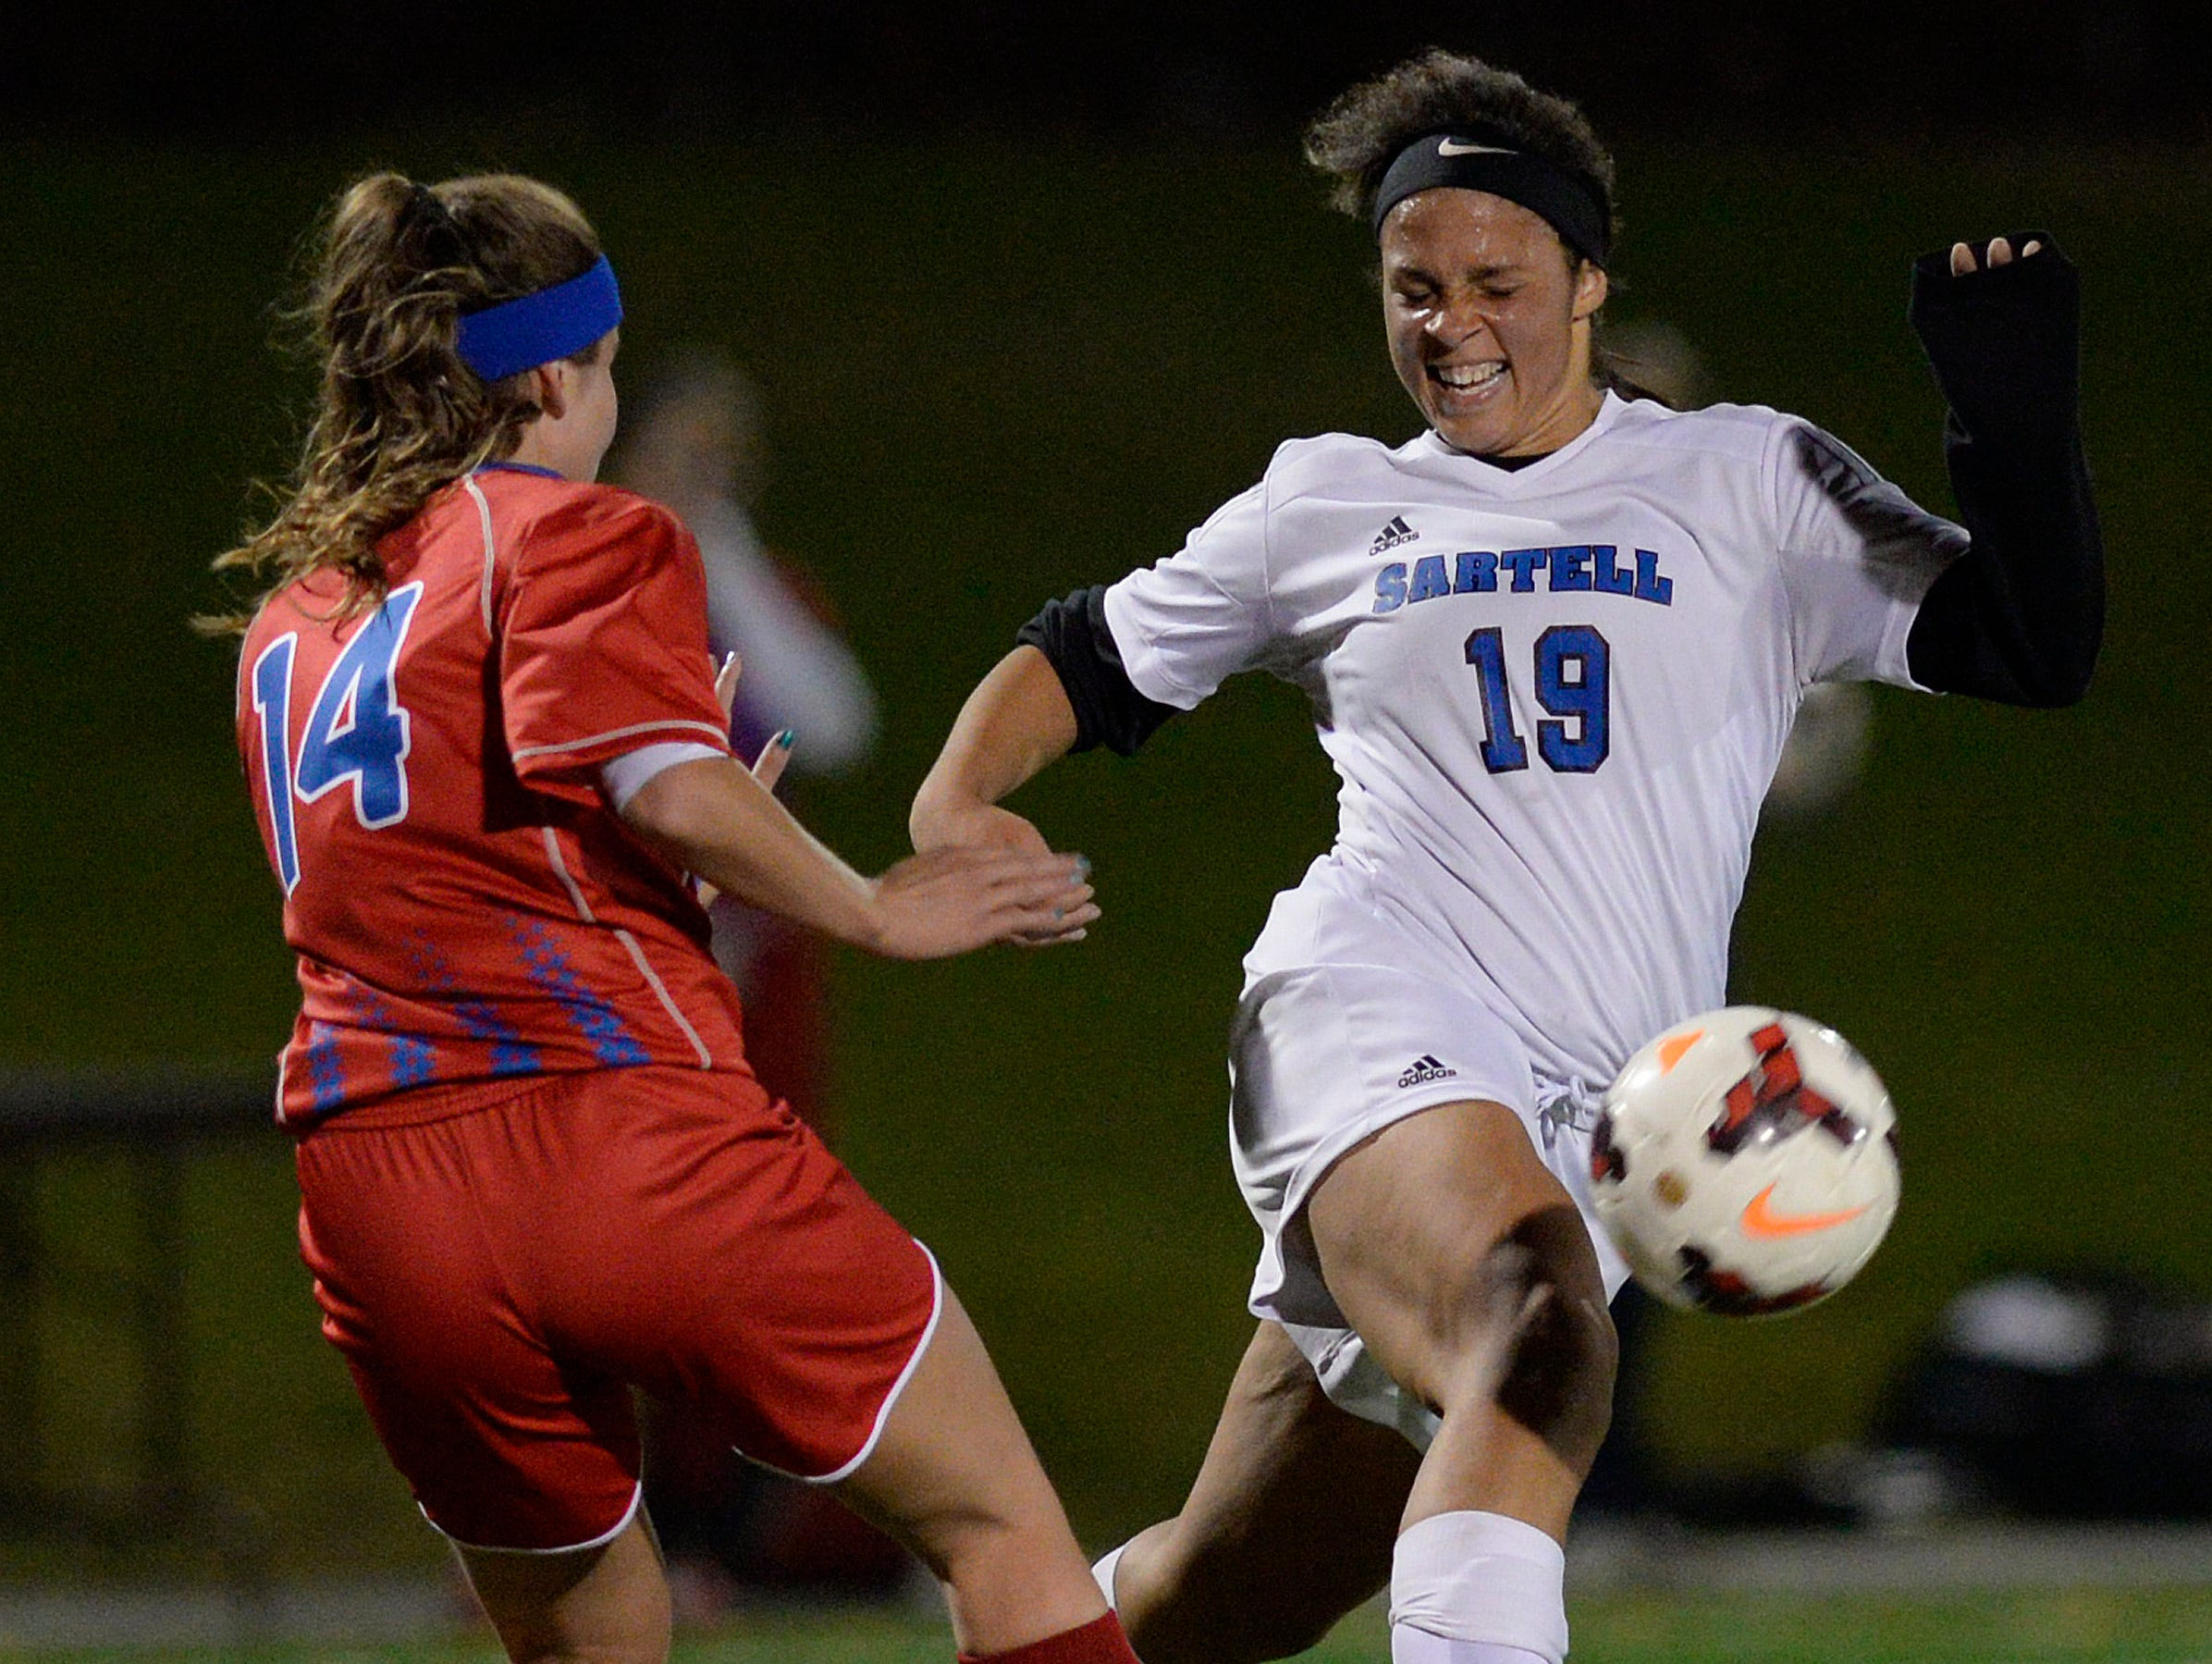 Sartell's Jaylia Ellis (19) gets control of the ball from St. Cloud Apollo's Mikaela Soltis (14) in the first half of their Sect. 8A championship game Thursday, Oct. 22 at Husky Stadium.